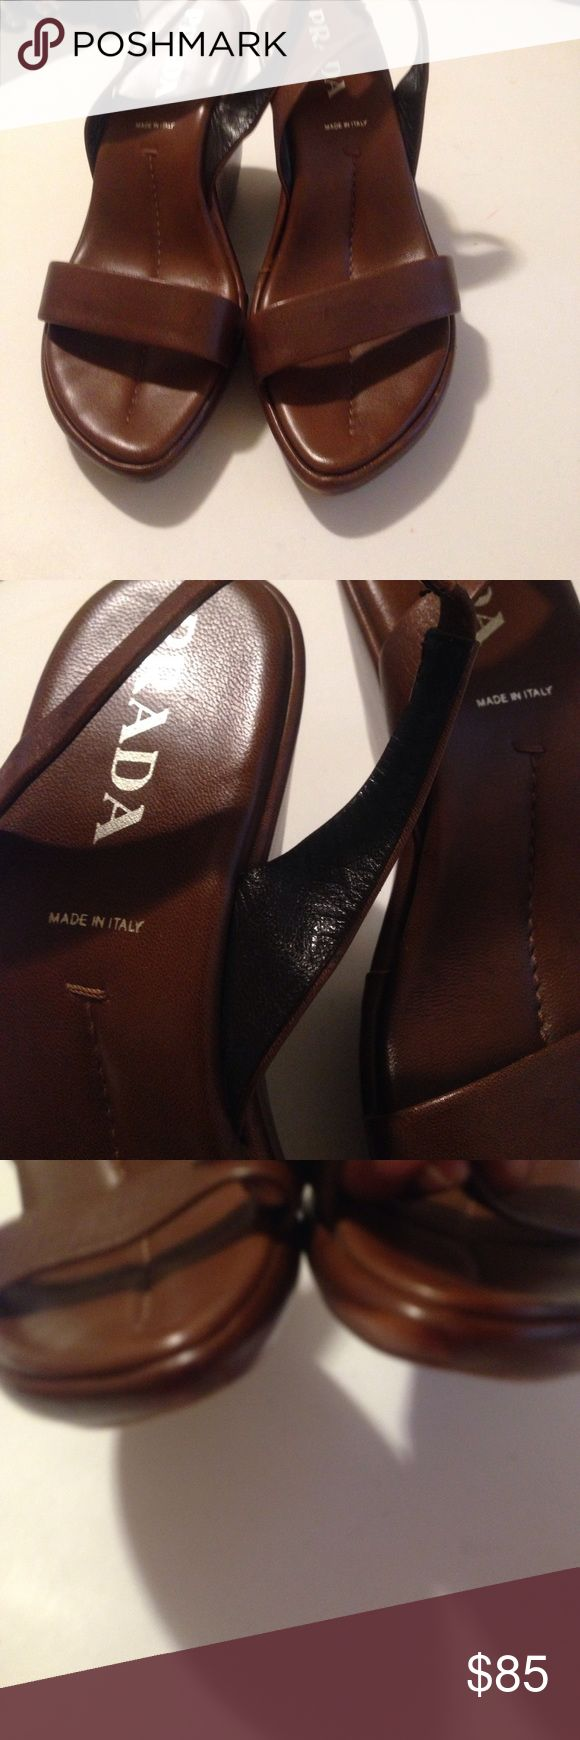 Prada Wedges💥💥sale Leather 5' heels. Toe & ankle straps. Signature soles. Minor water marks on toe straps. Easy fix with saddle soap Good condition cute & comfy Prada Shoes Wedges